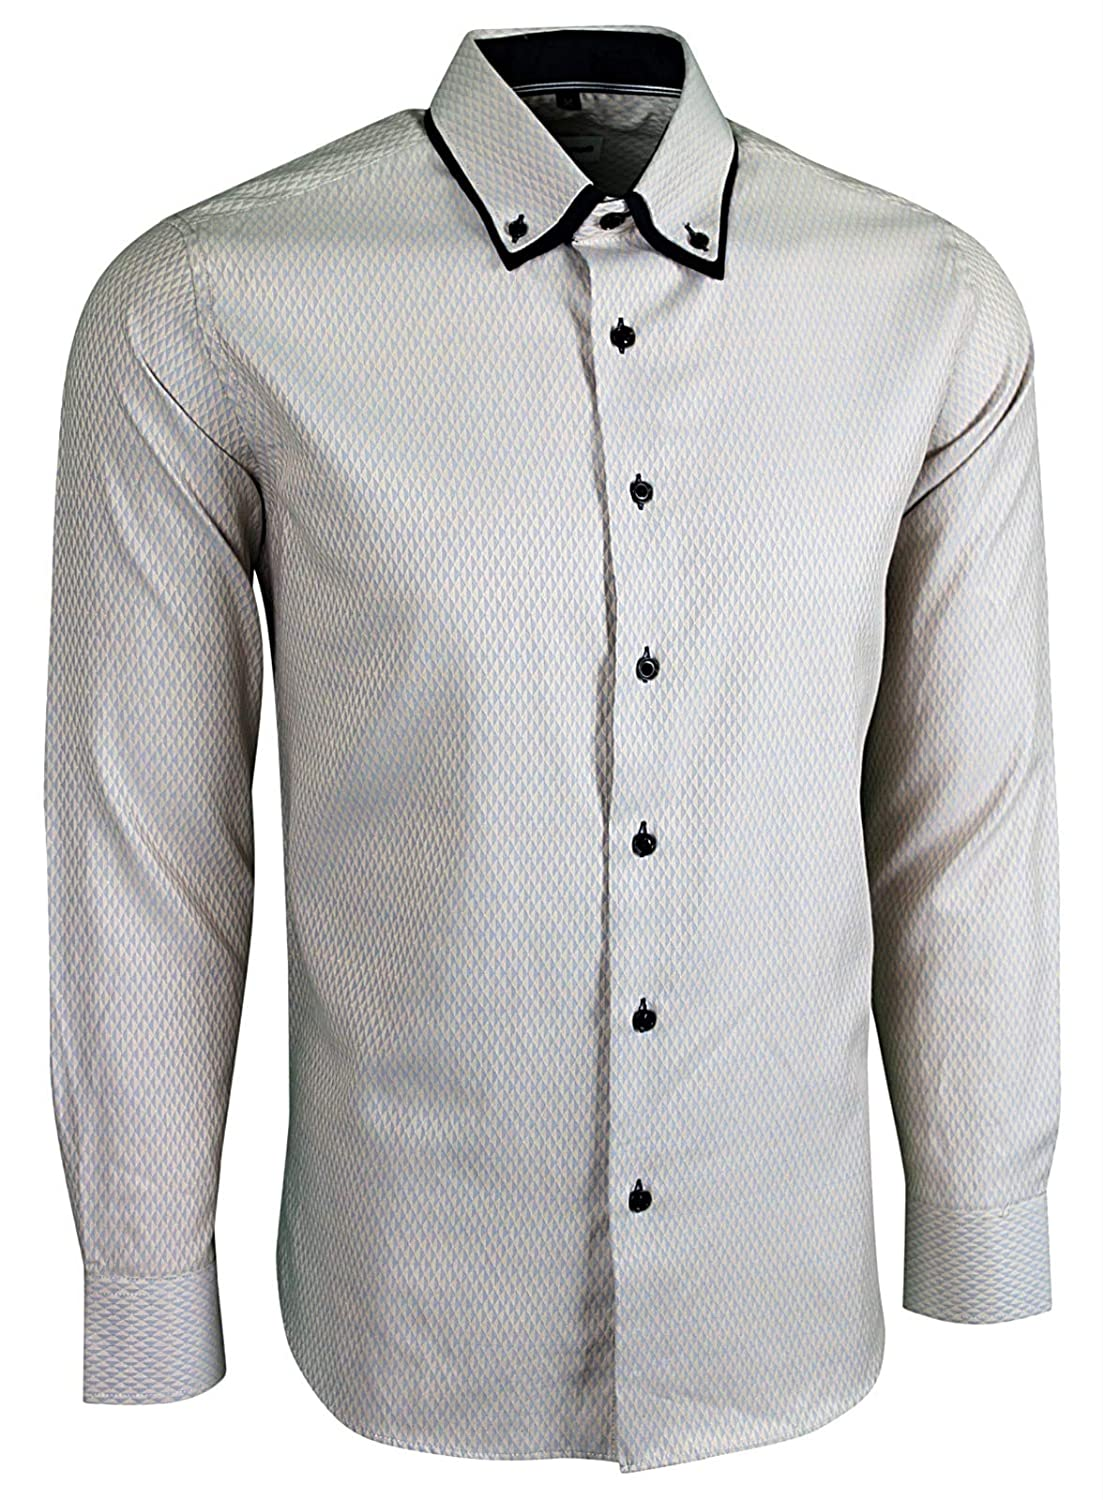 Mens Italian Style Smart Casual Formal Classic Summer Aztec Button